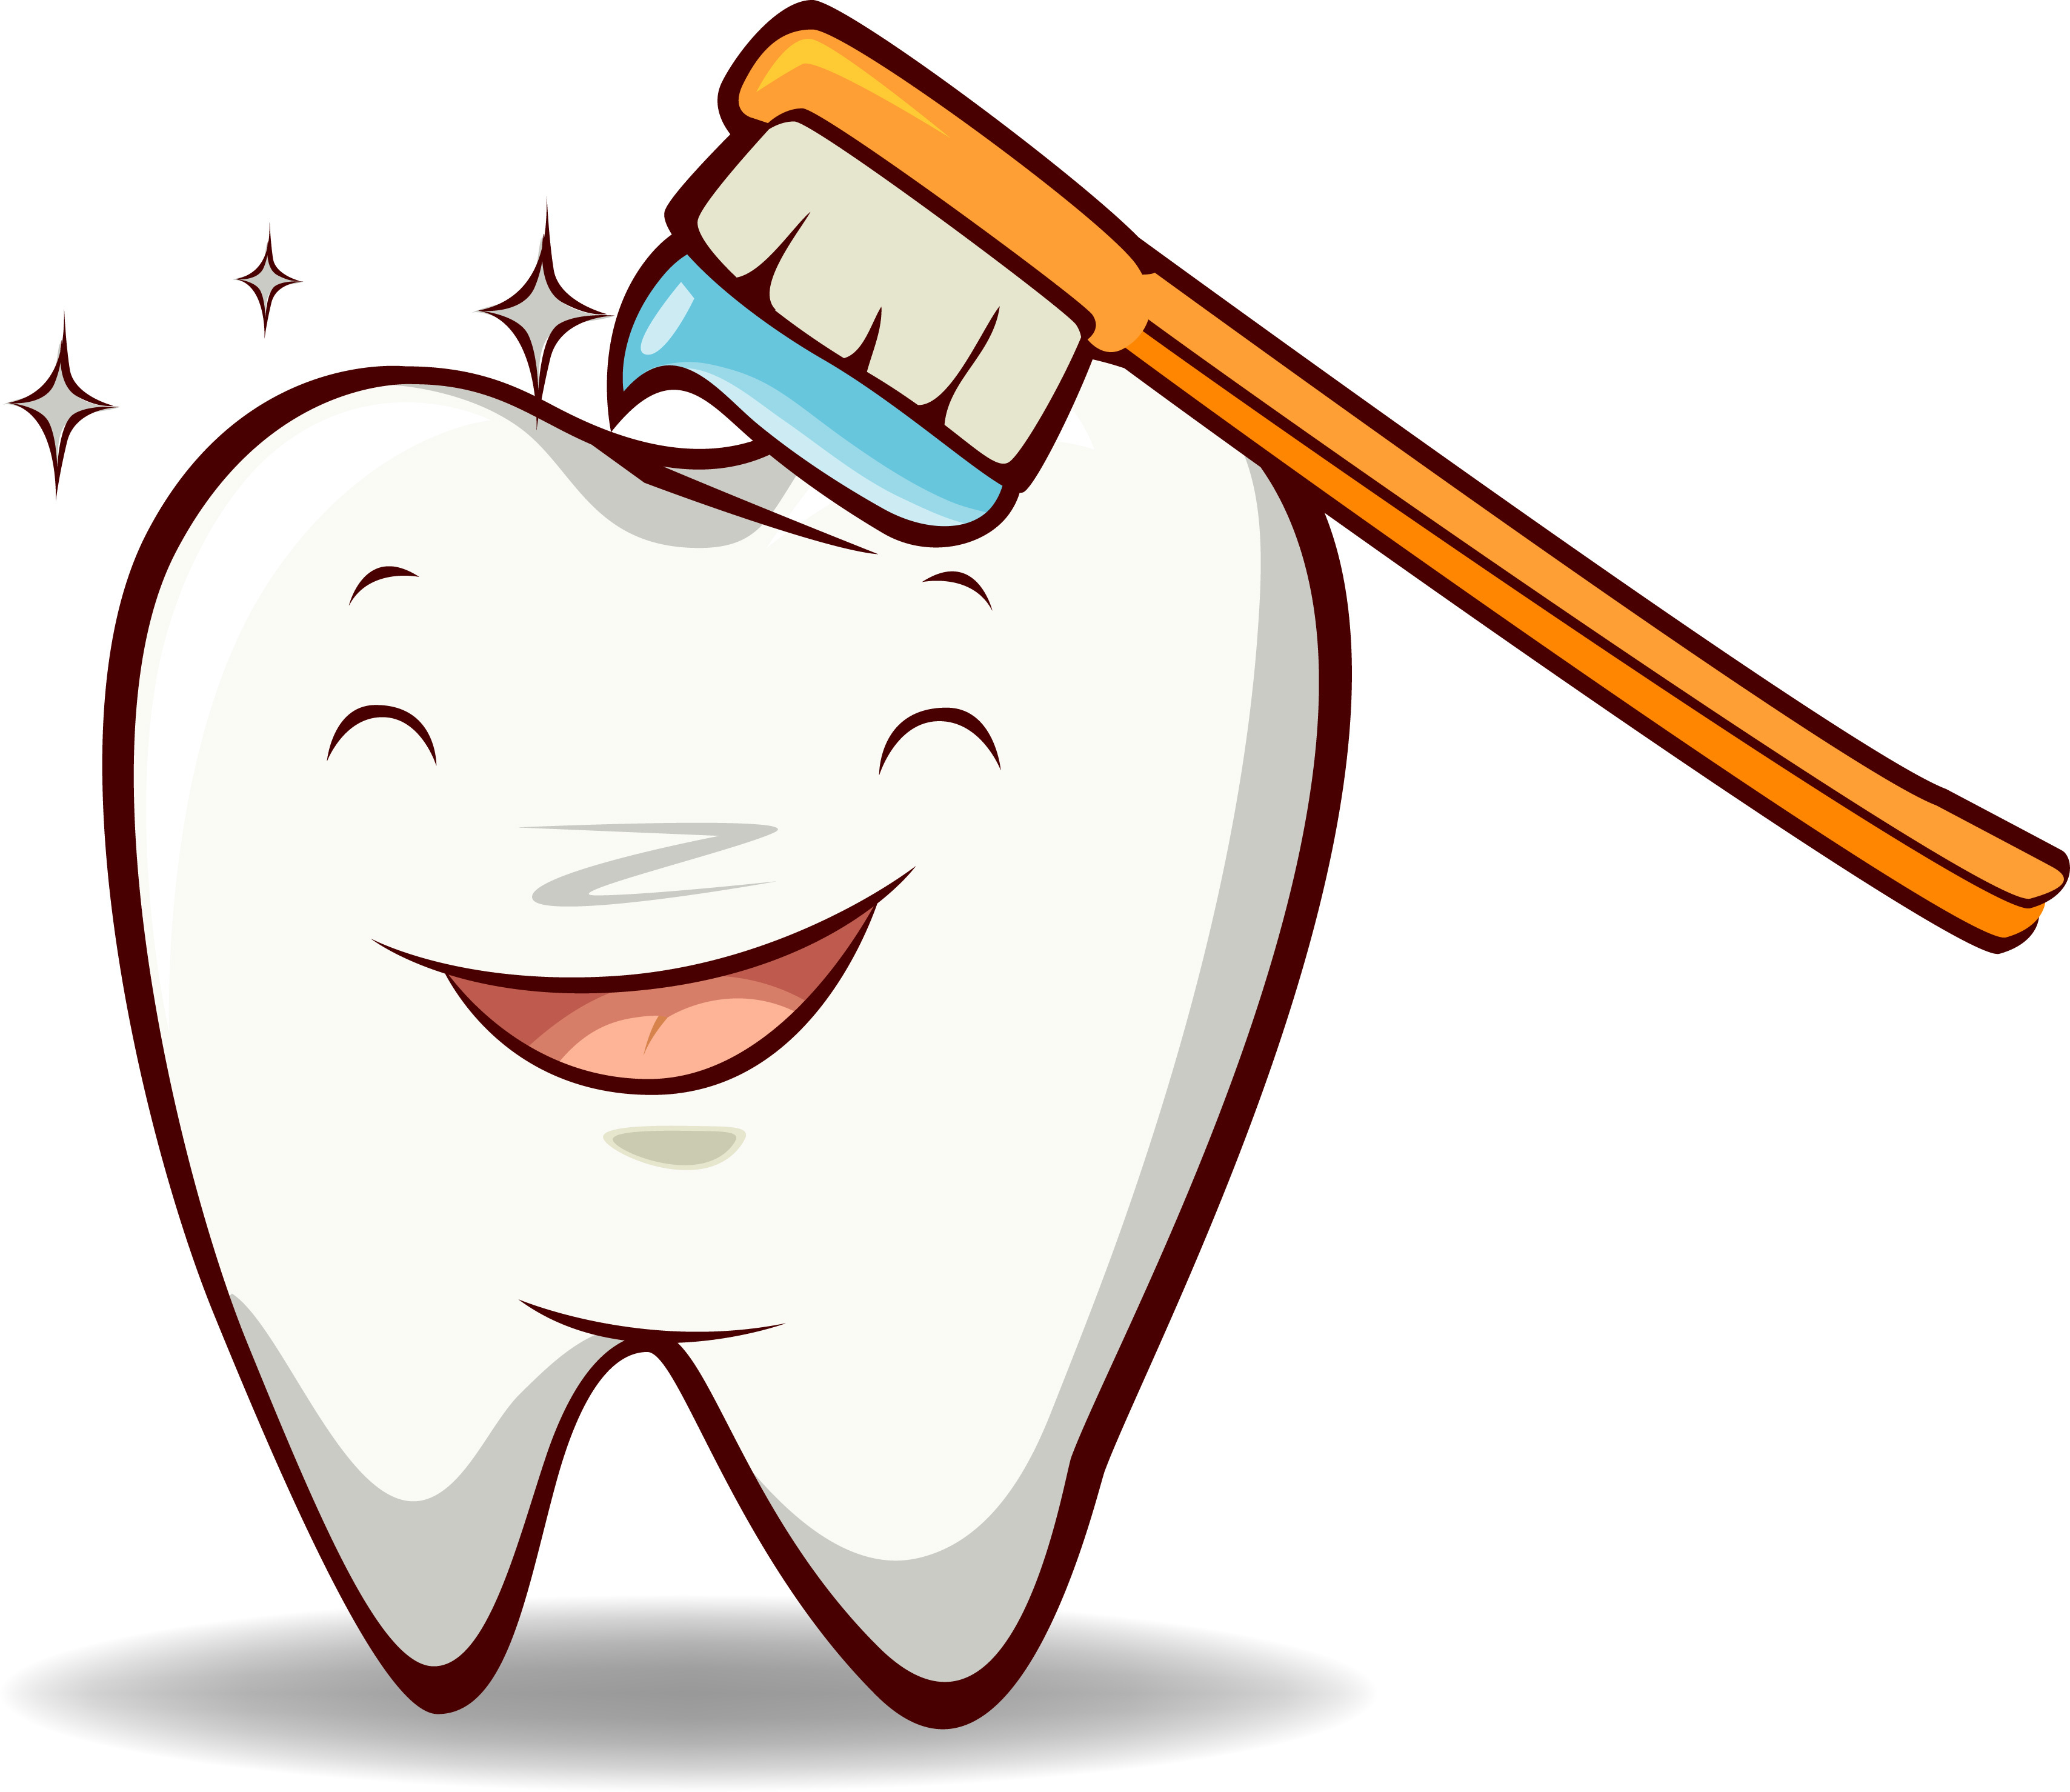 Free brushing teeth cliparts. Clipart smile dental smile